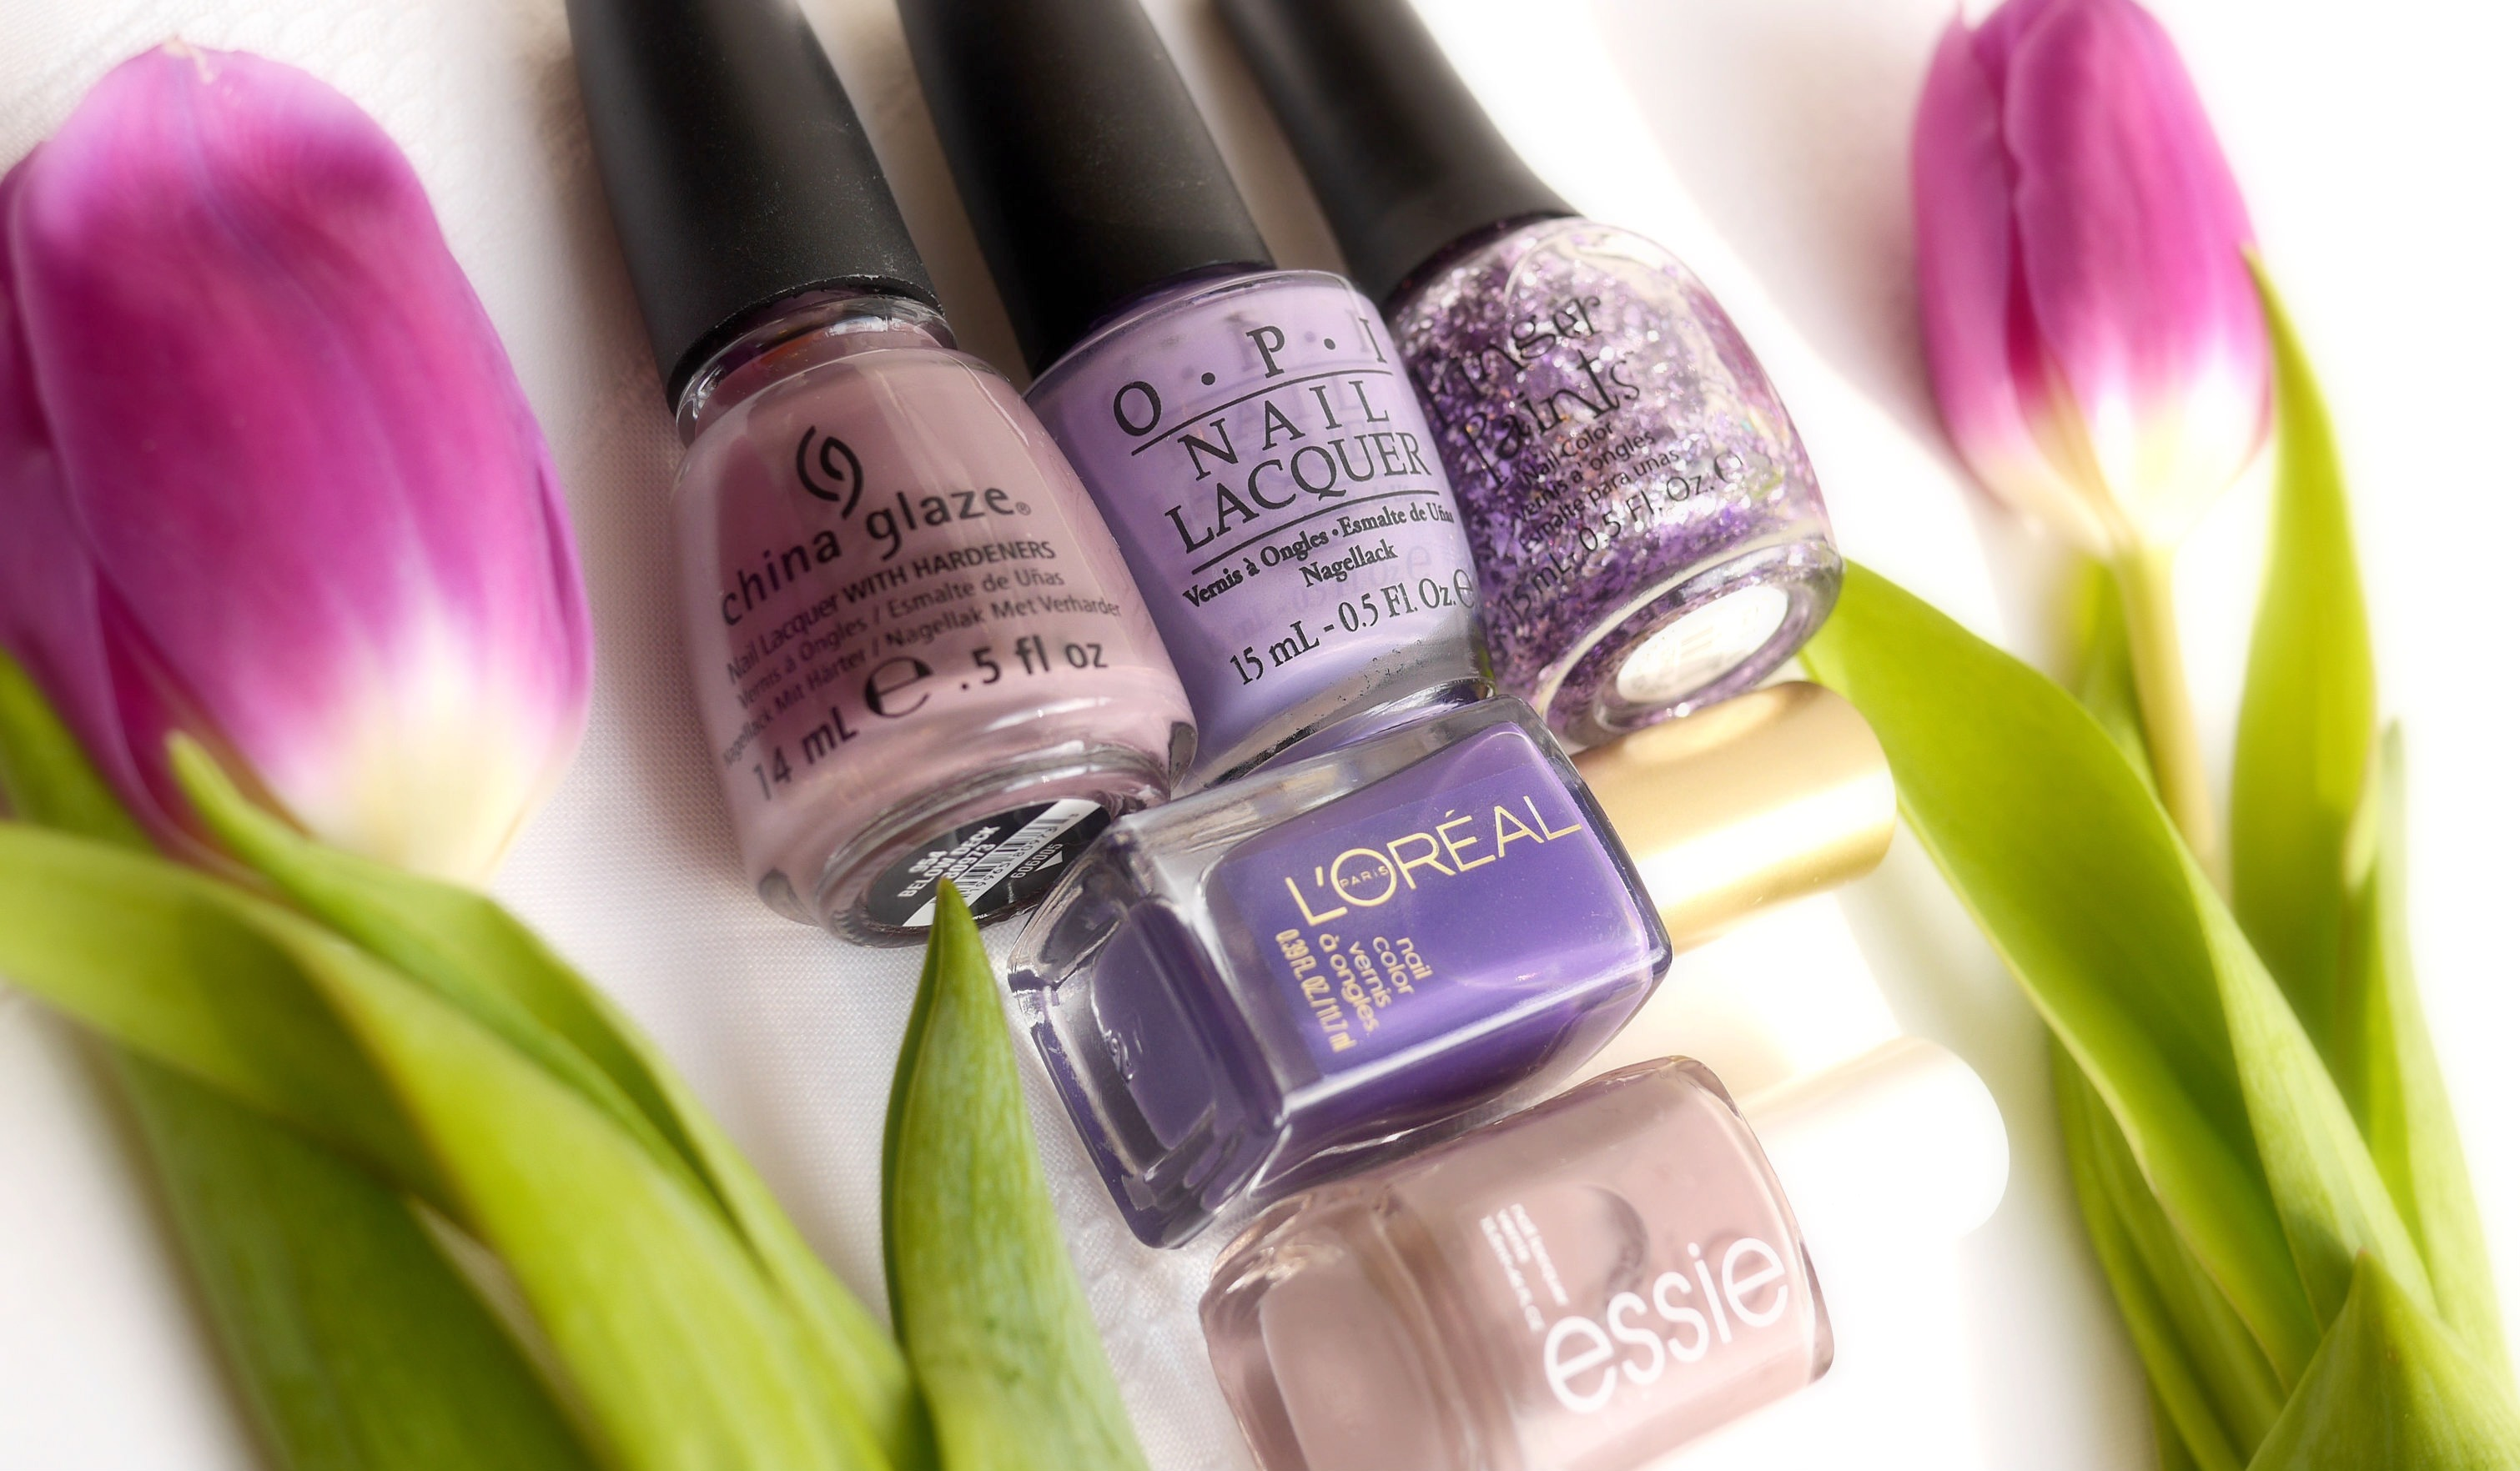 Purple Polishes for Spring